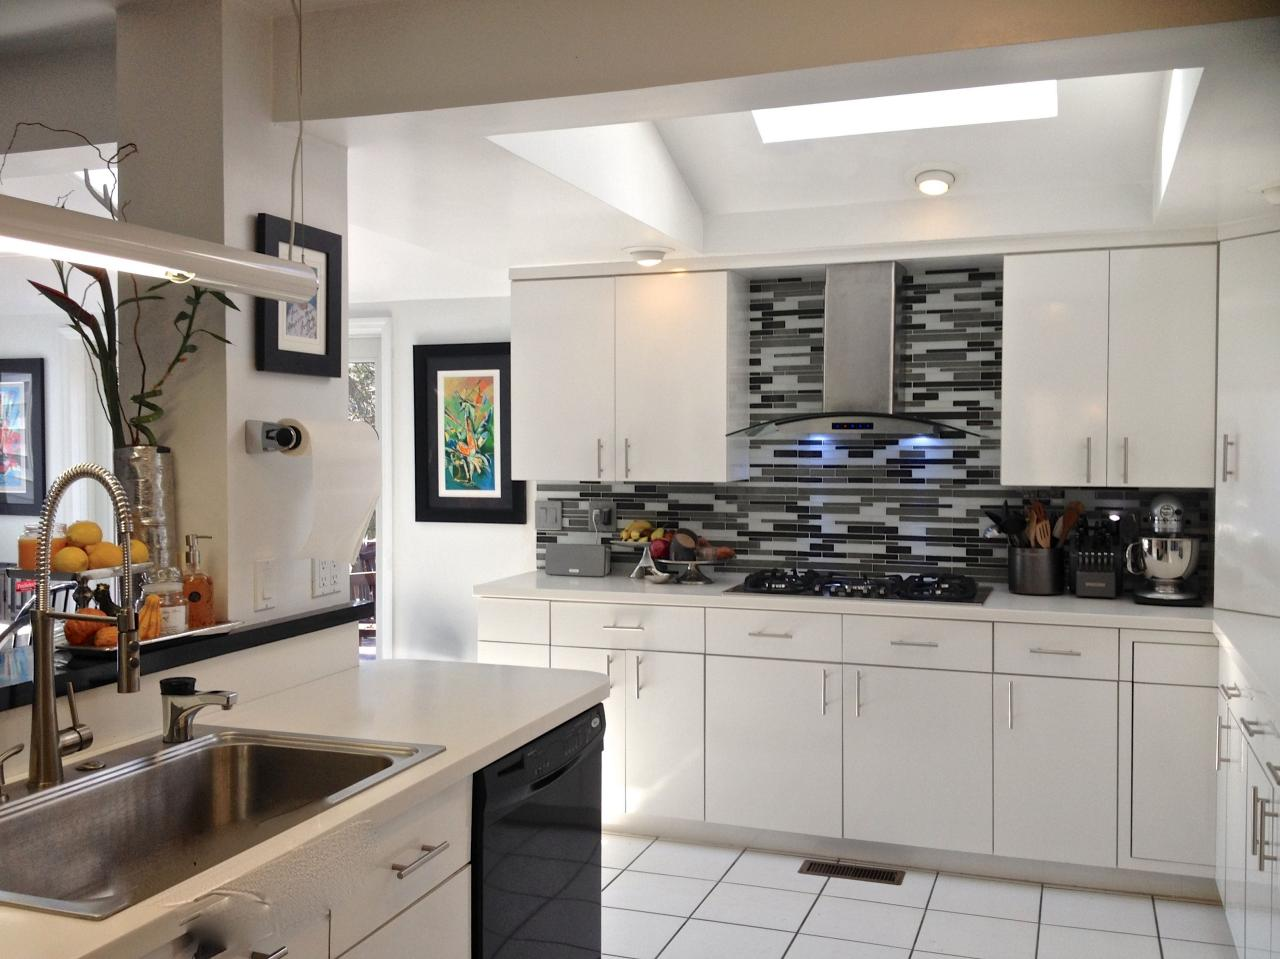 Photos hgtv - Black and white tile kitchen backsplash ...